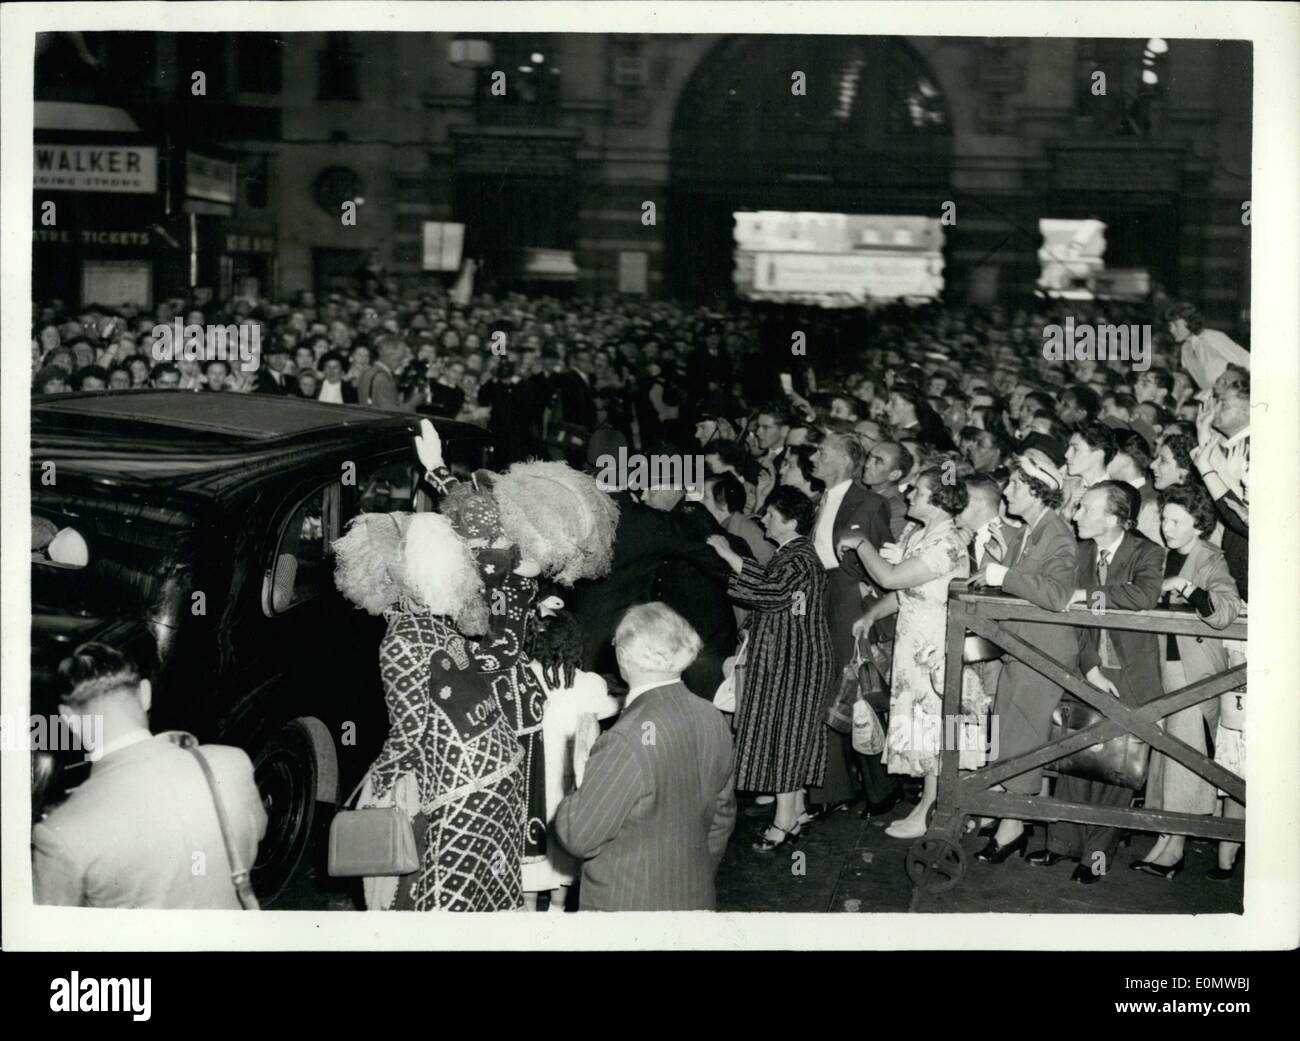 Sep. 09, 1956 - Liberace Arrives In London. Photo shows General view showing crowds surging round Liberace's car, when he left Waterloo Station today - after his arrival. - Stock Image